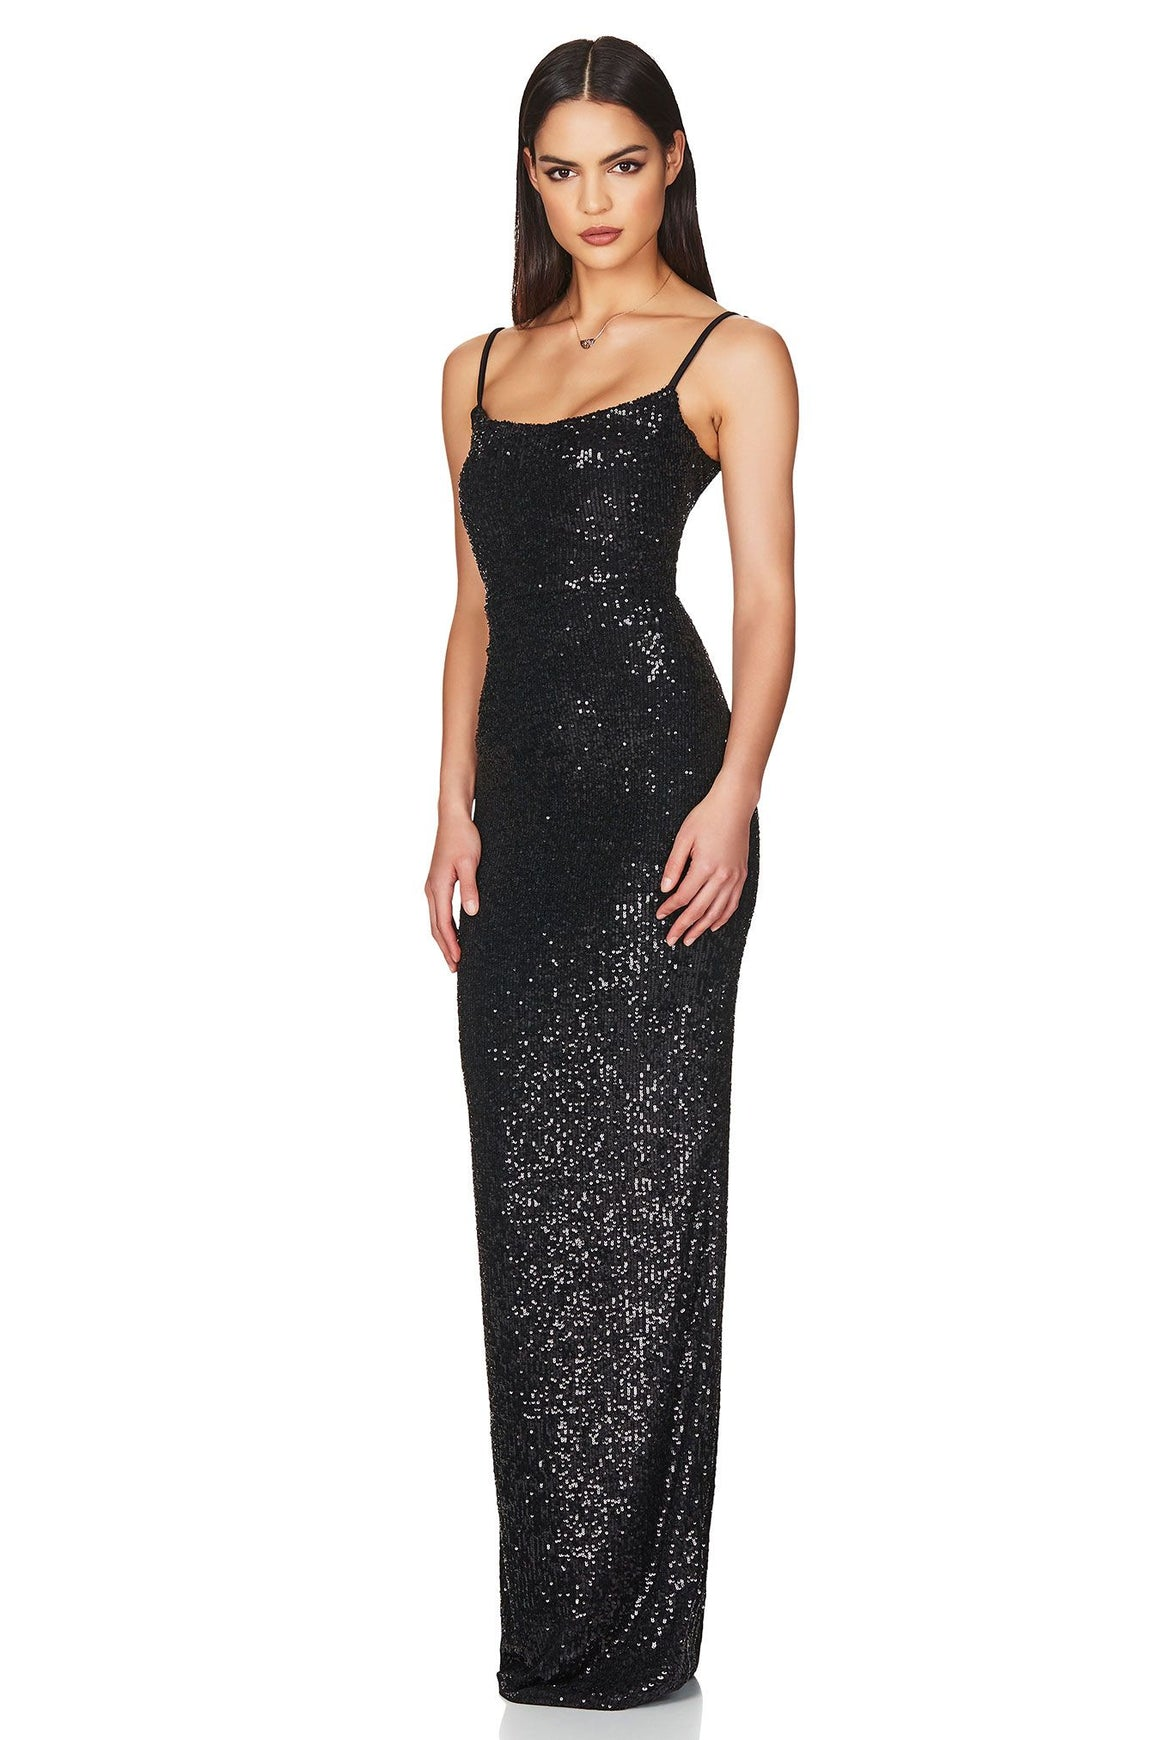 Lovers Gown - Black